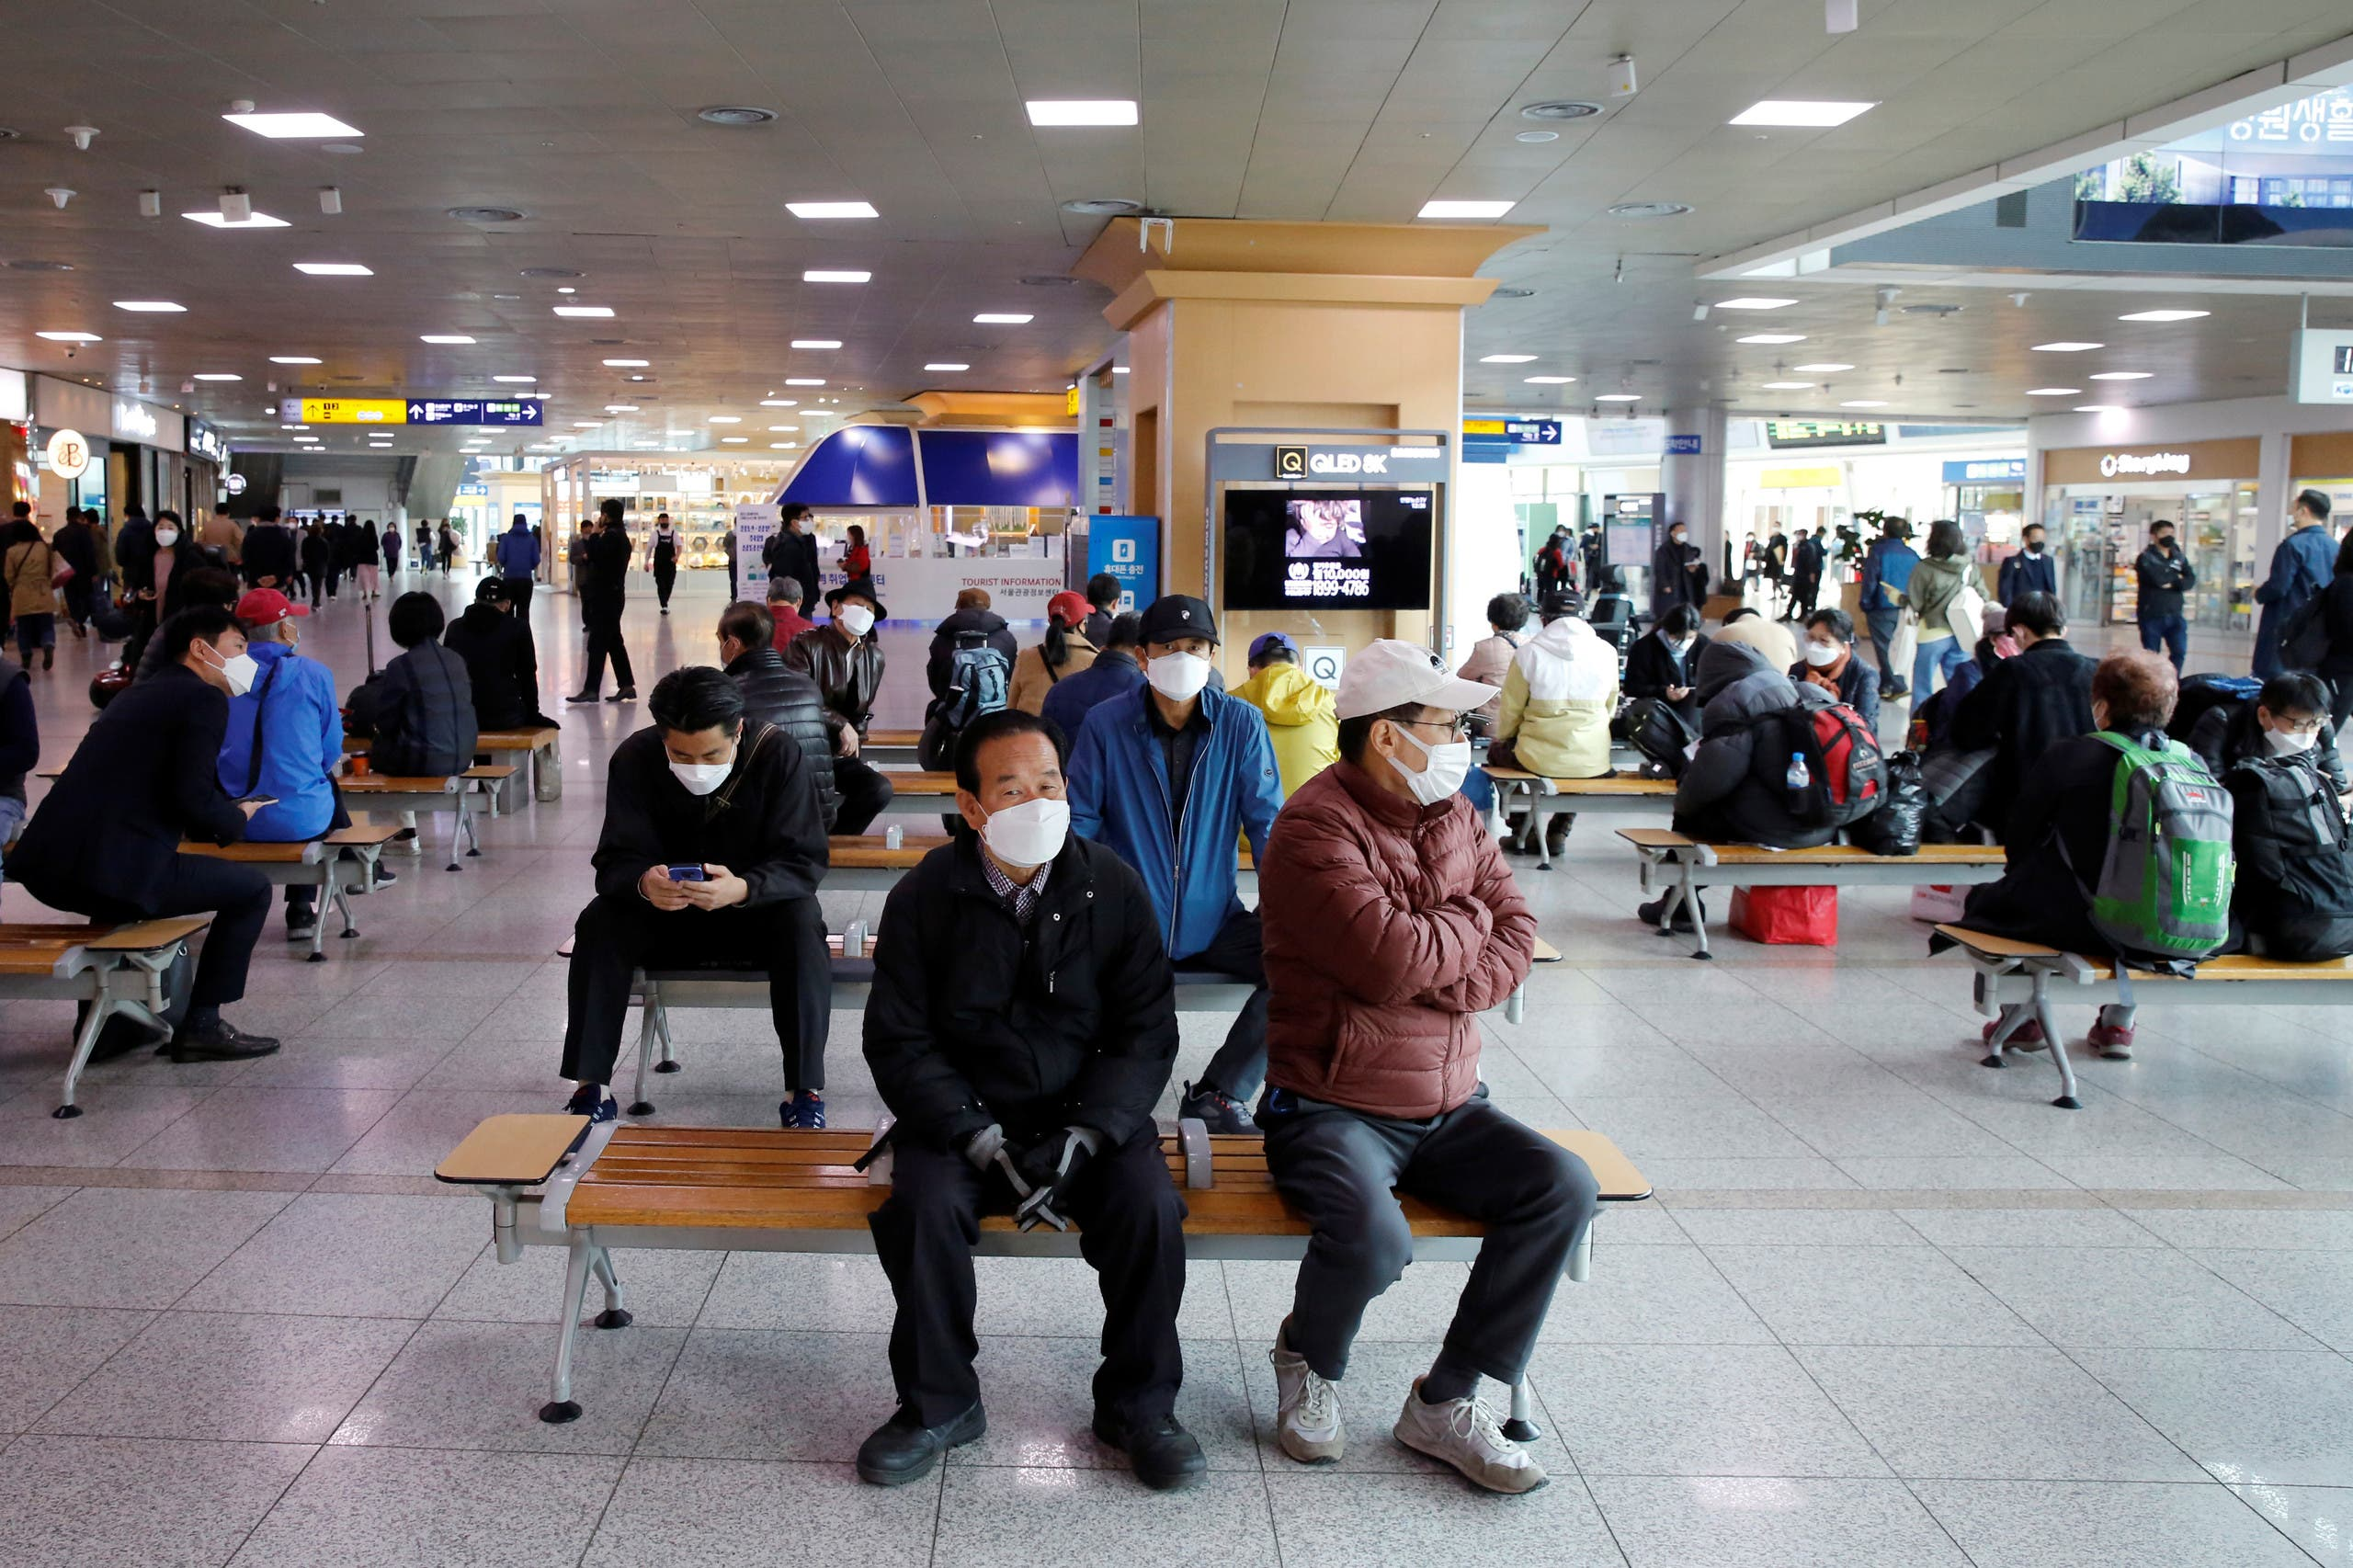 People wearing face masks to protect against contracting the coronavirus disease (COVID-19), wait at the Seoul Railway Station in Seoul, South Korea, April 21, 2020. (Reuters)